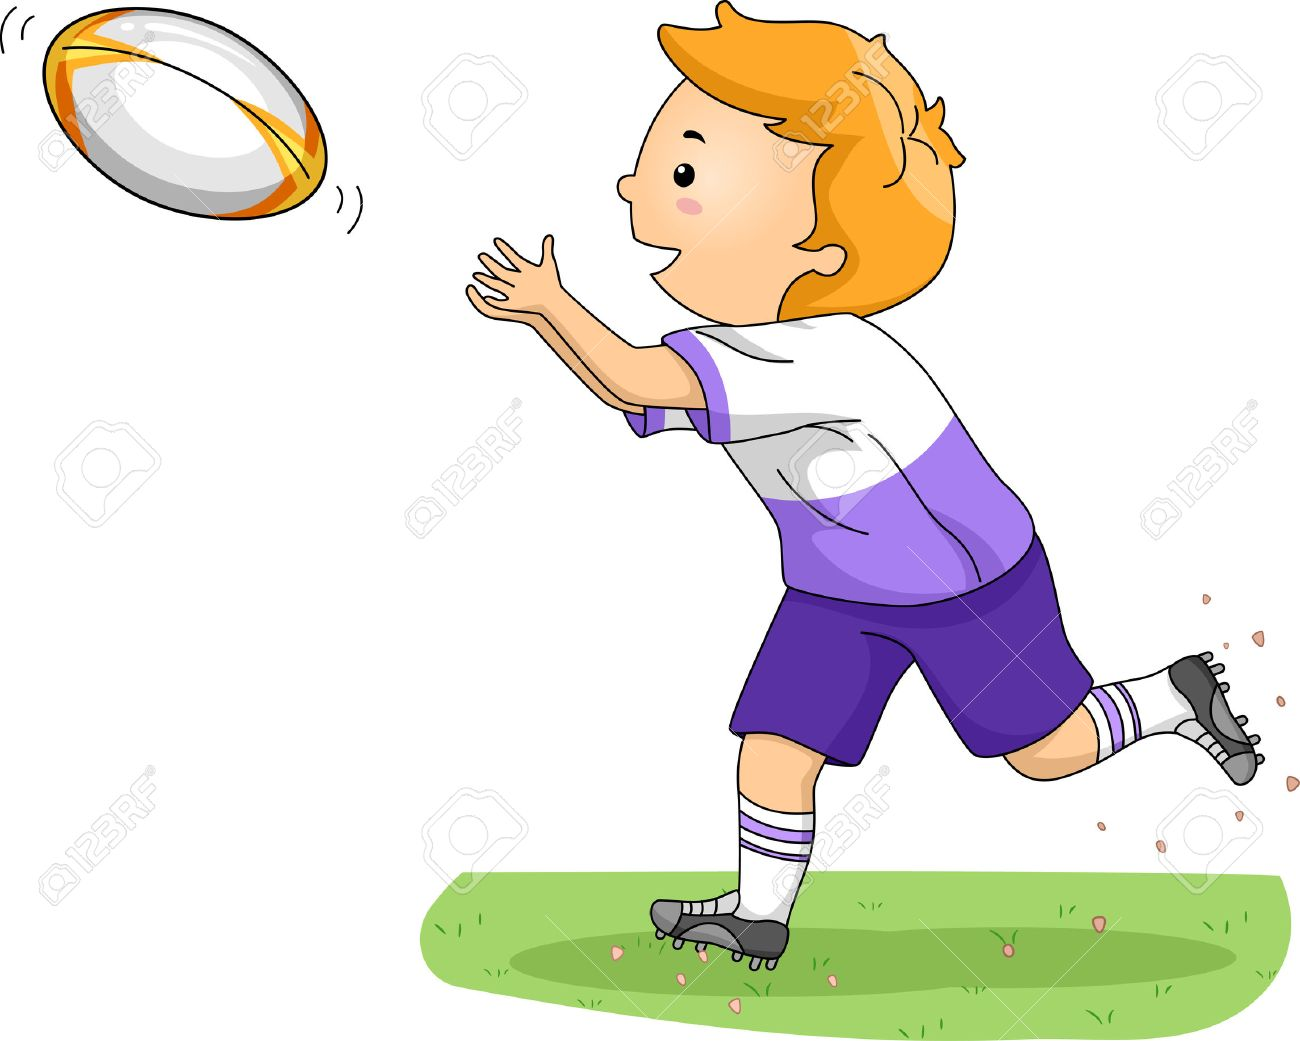 illustration of a boy catching a rugby ball royalty free cliparts rh 123rf com rugby clipart pictures rugby clipart transparent